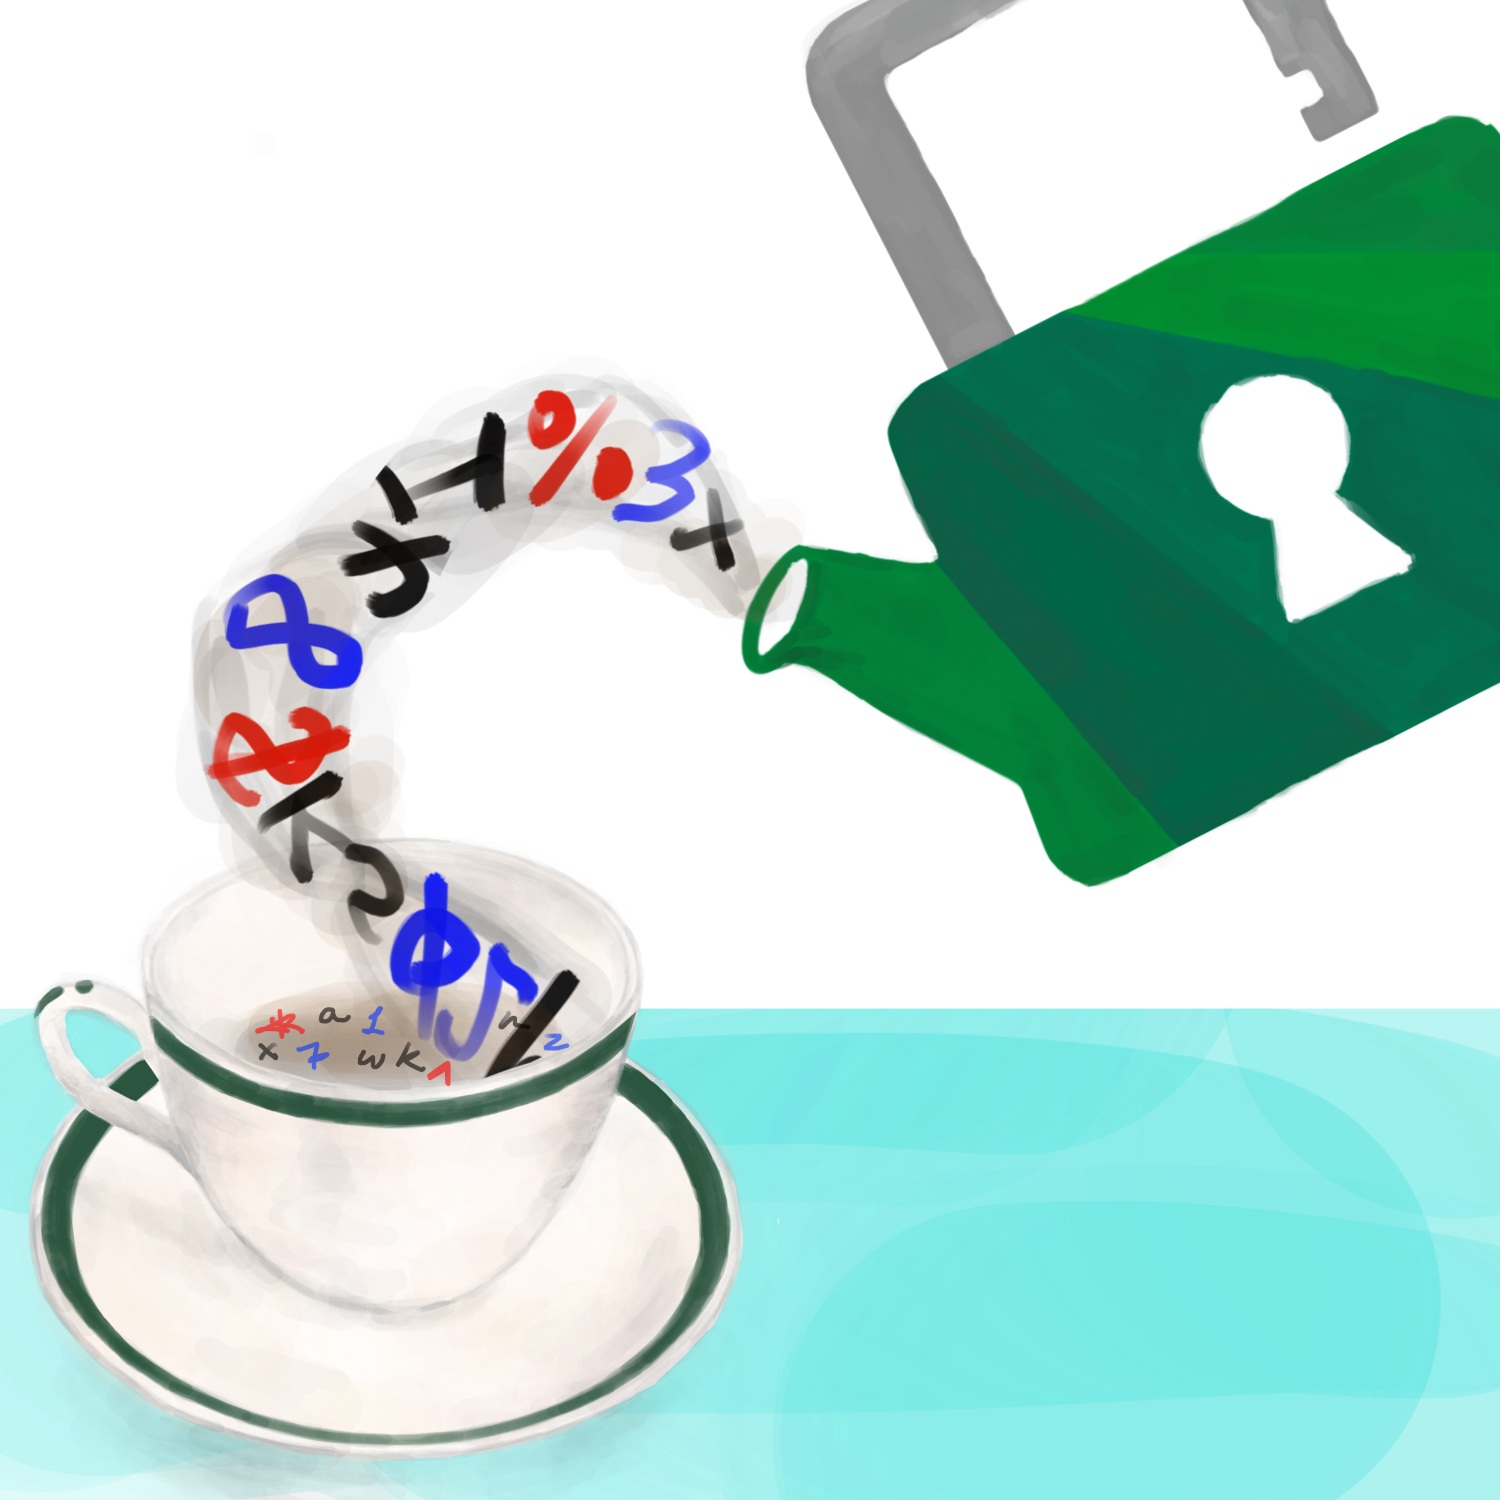 A Loose Leaf Security logo teapot pouring a strong password string into a teacup